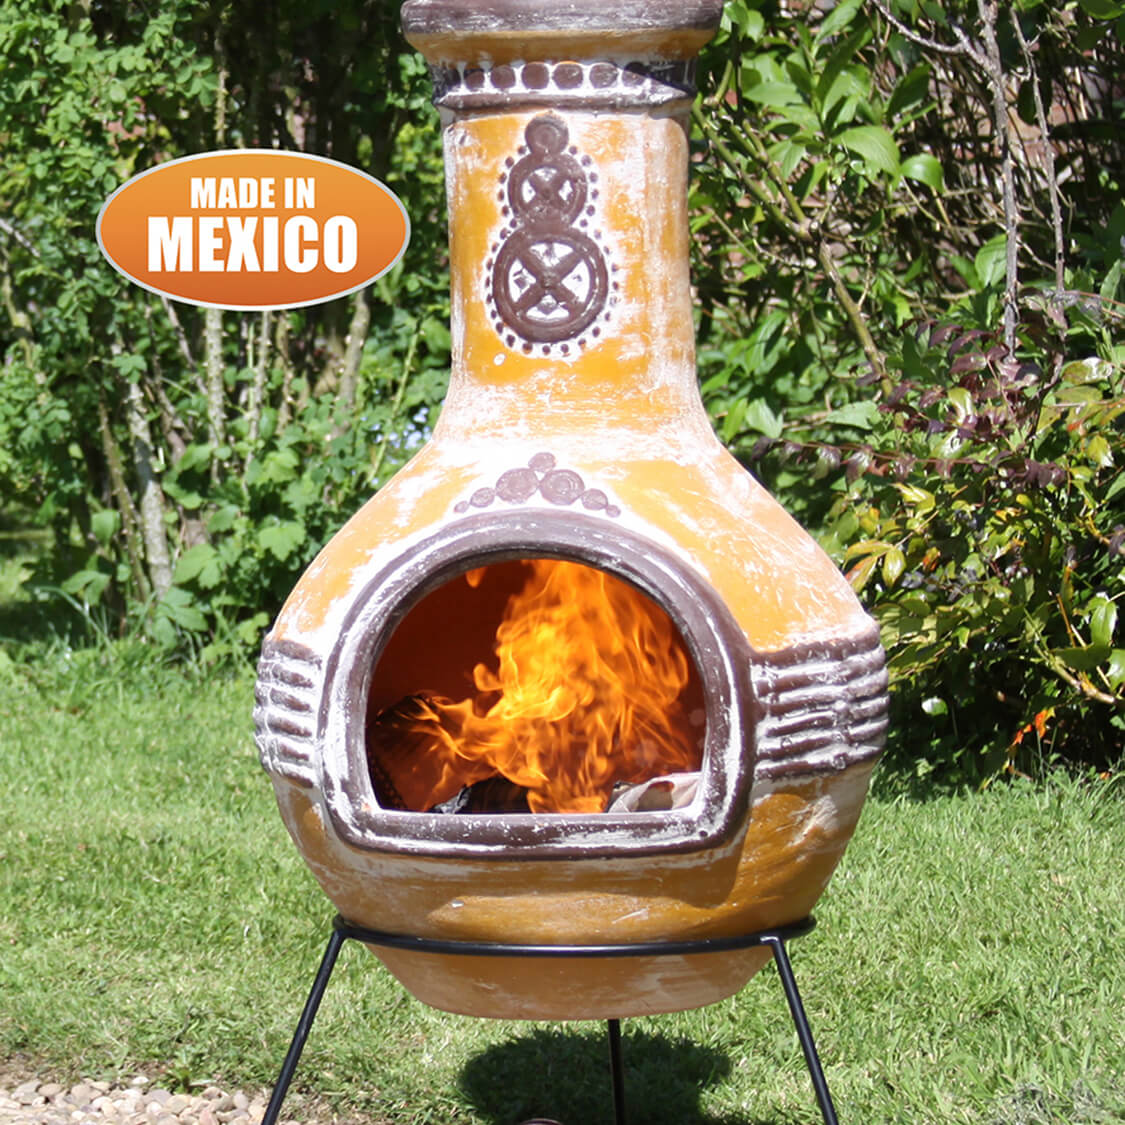 Clay Chiminea Including Traditional Mexican Chiminea